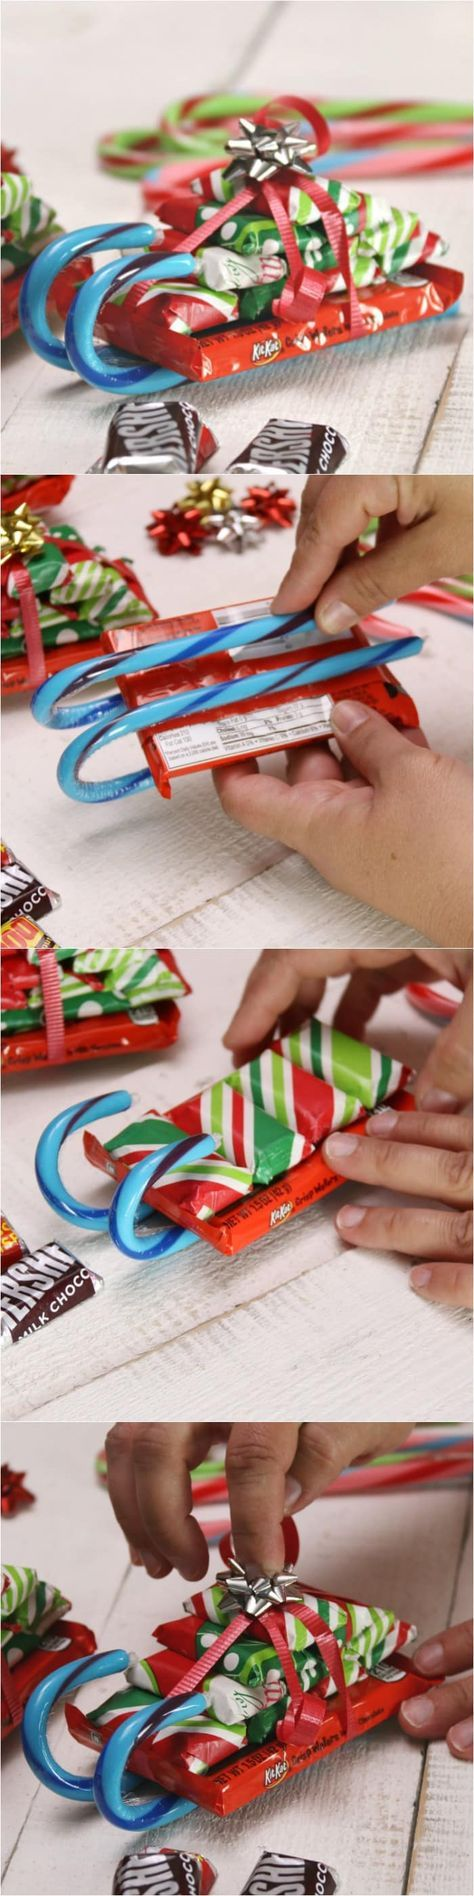 Candy Cane Sleigh - The Perfect DIY Holiday Gift!